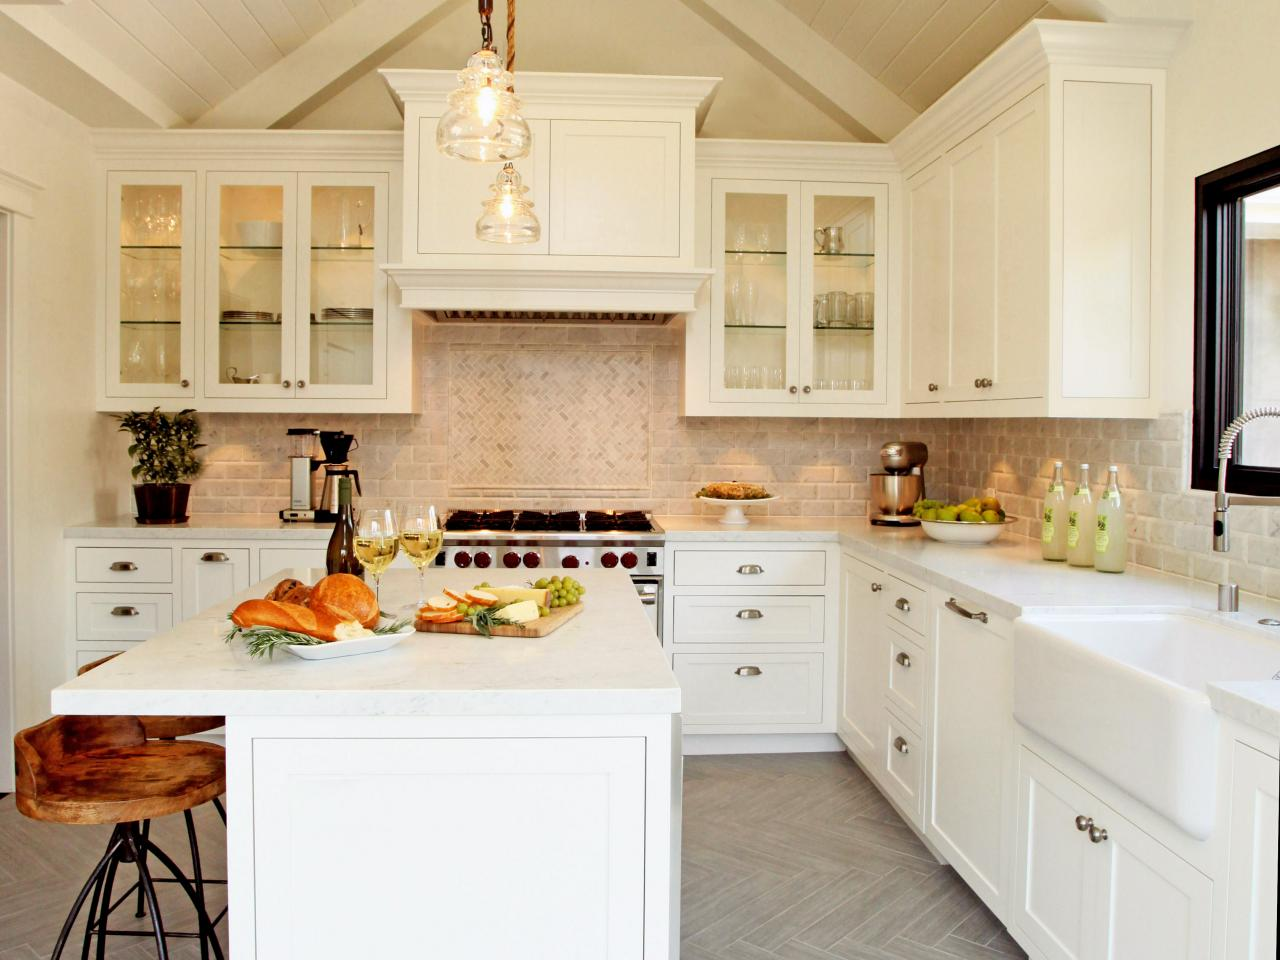 Modern Farmhouse Kitchen | Christopher Grubb | HGTV on kraftmaid kitchen island ideas, farmhouse floor ideas, victorian kitchen cabinet ideas, apartment kitchen cabinet ideas, rustic kitchen ideas, ranch kitchen cabinet ideas, home cabinet ideas, industrial kitchen cabinet ideas, victorian style kitchen ideas, kitchen bar cabinet ideas, farmhouse vanity ideas, farmhouse dining set ideas, farmhouse closet ideas, porch cabinet ideas, beach kitchen cabinet ideas, cabin kitchen cabinet ideas, farmhouse door ideas, farmhouse furniture ideas, english cottage kitchen cabinet ideas, prim kitchen ideas,